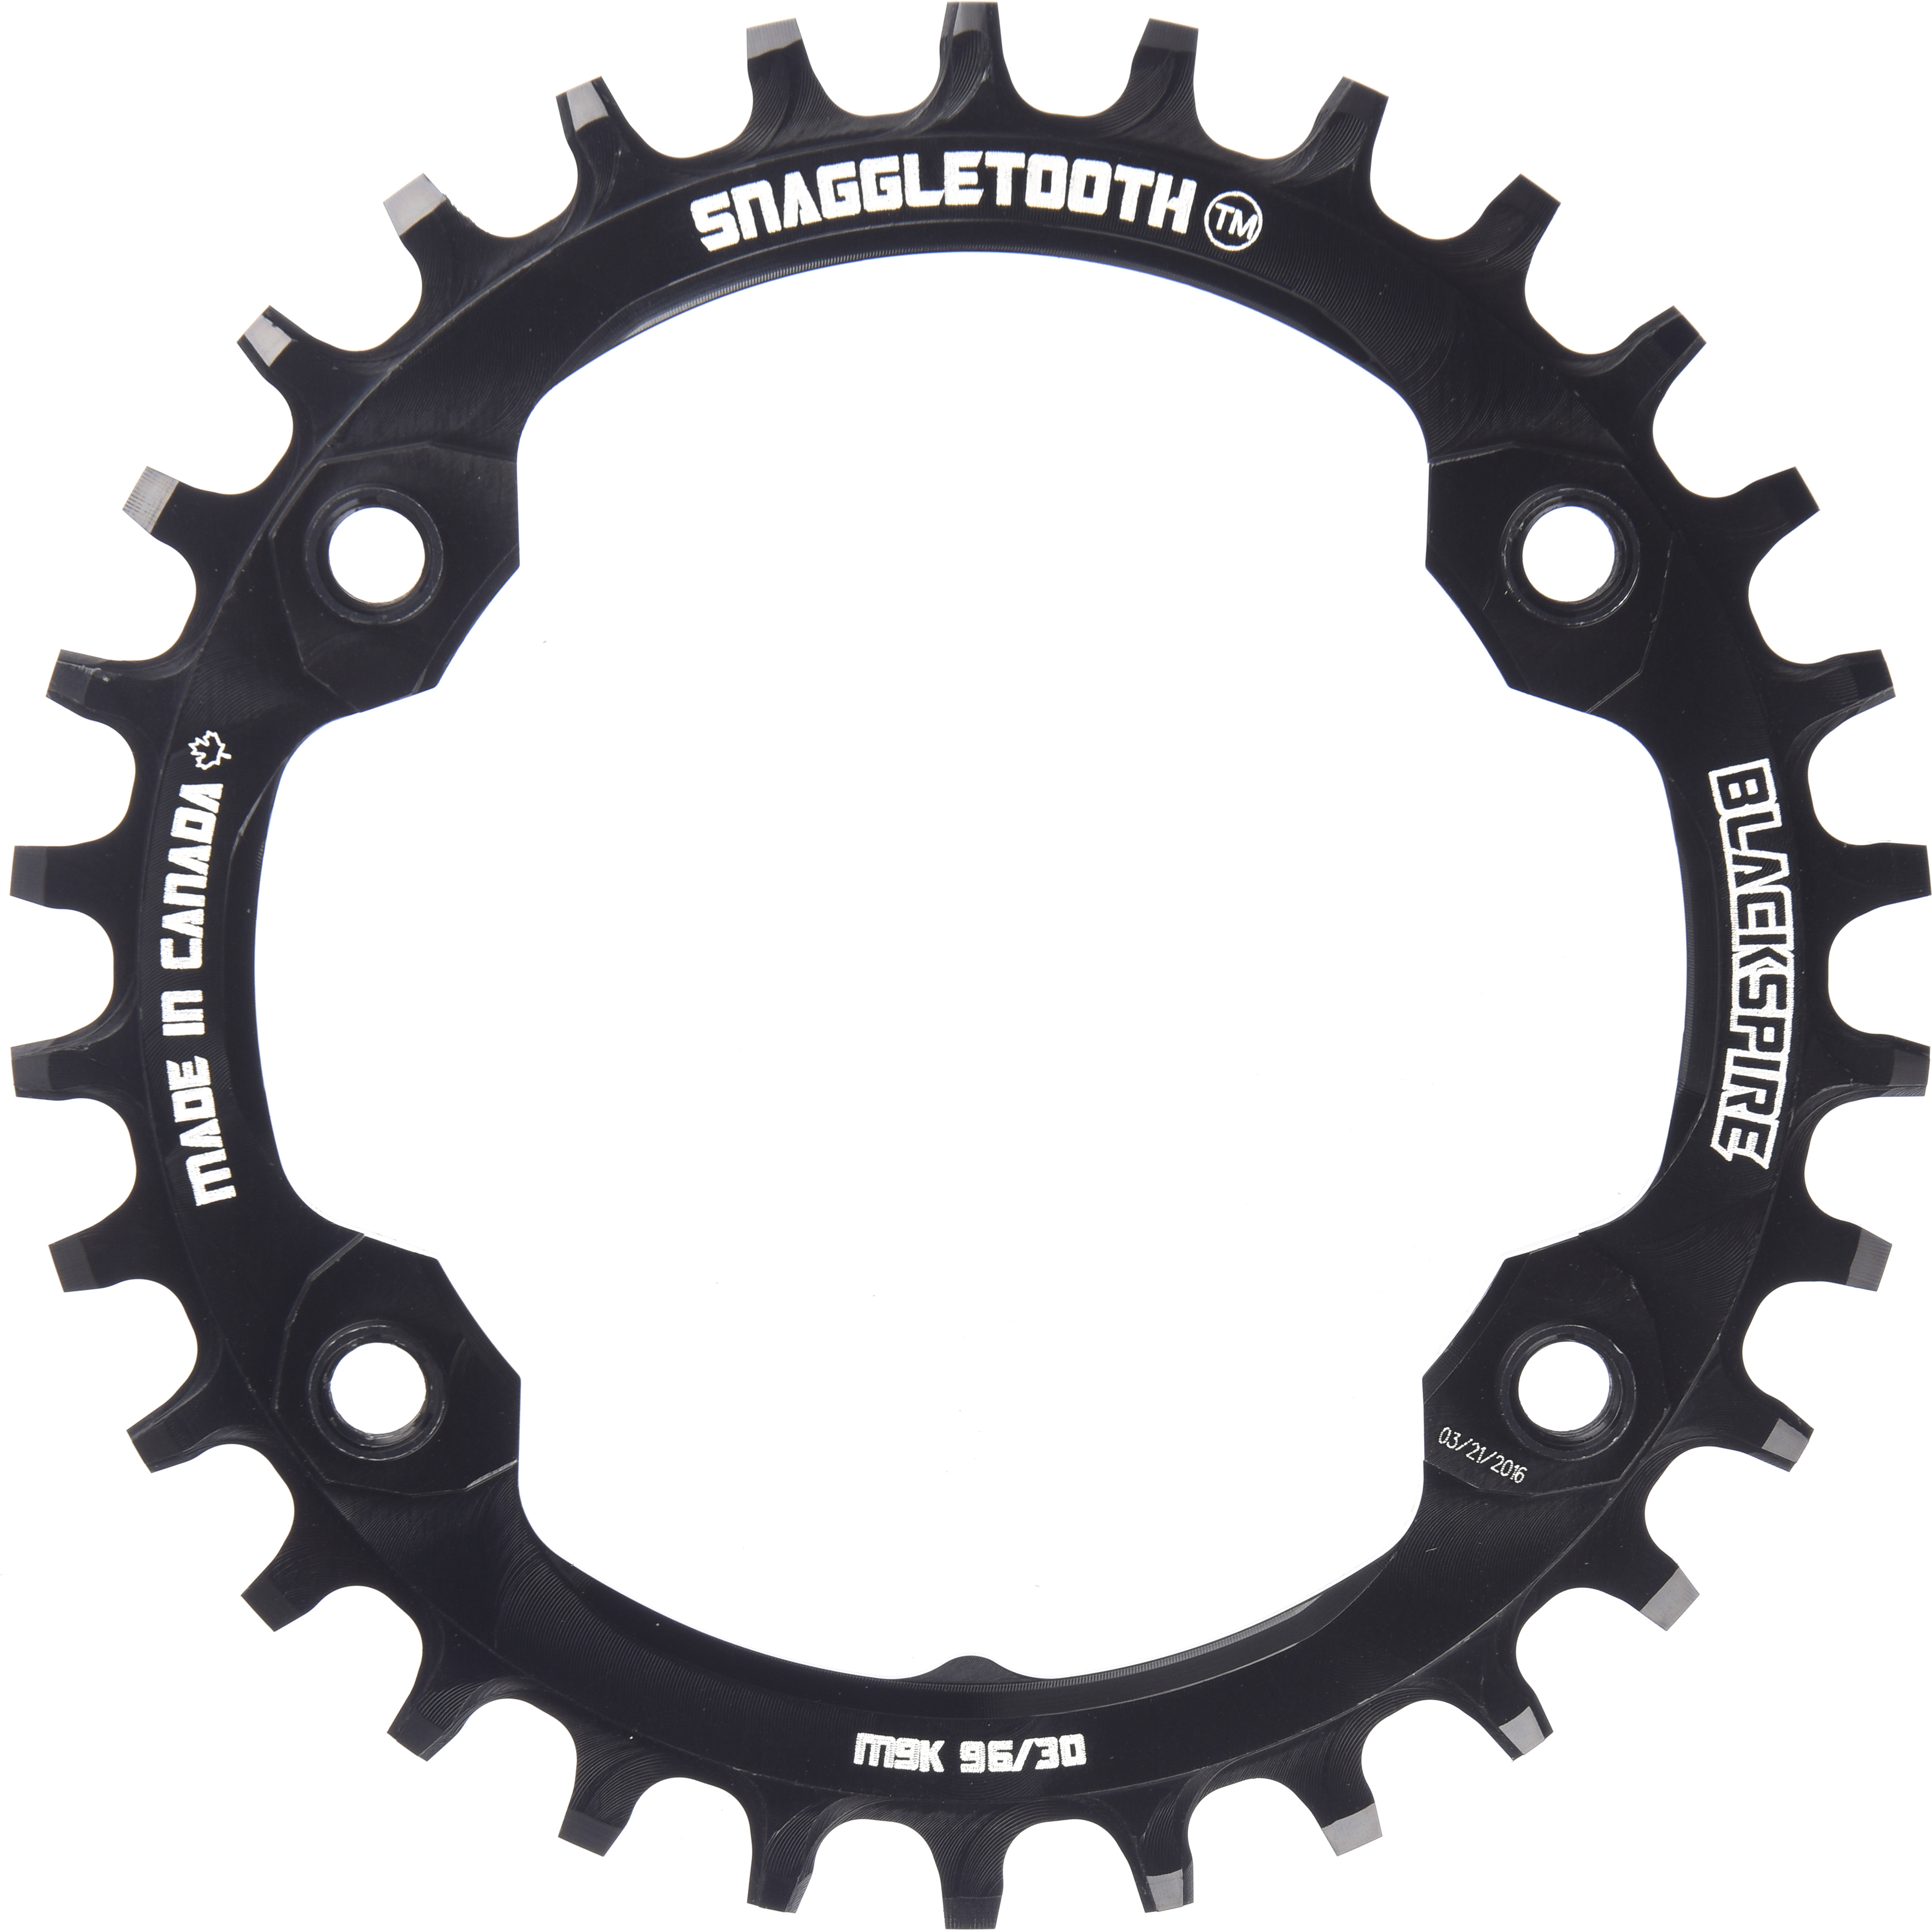 Blackspire Snaggletooth XTR Narrow Wide Chainring | chainrings_component